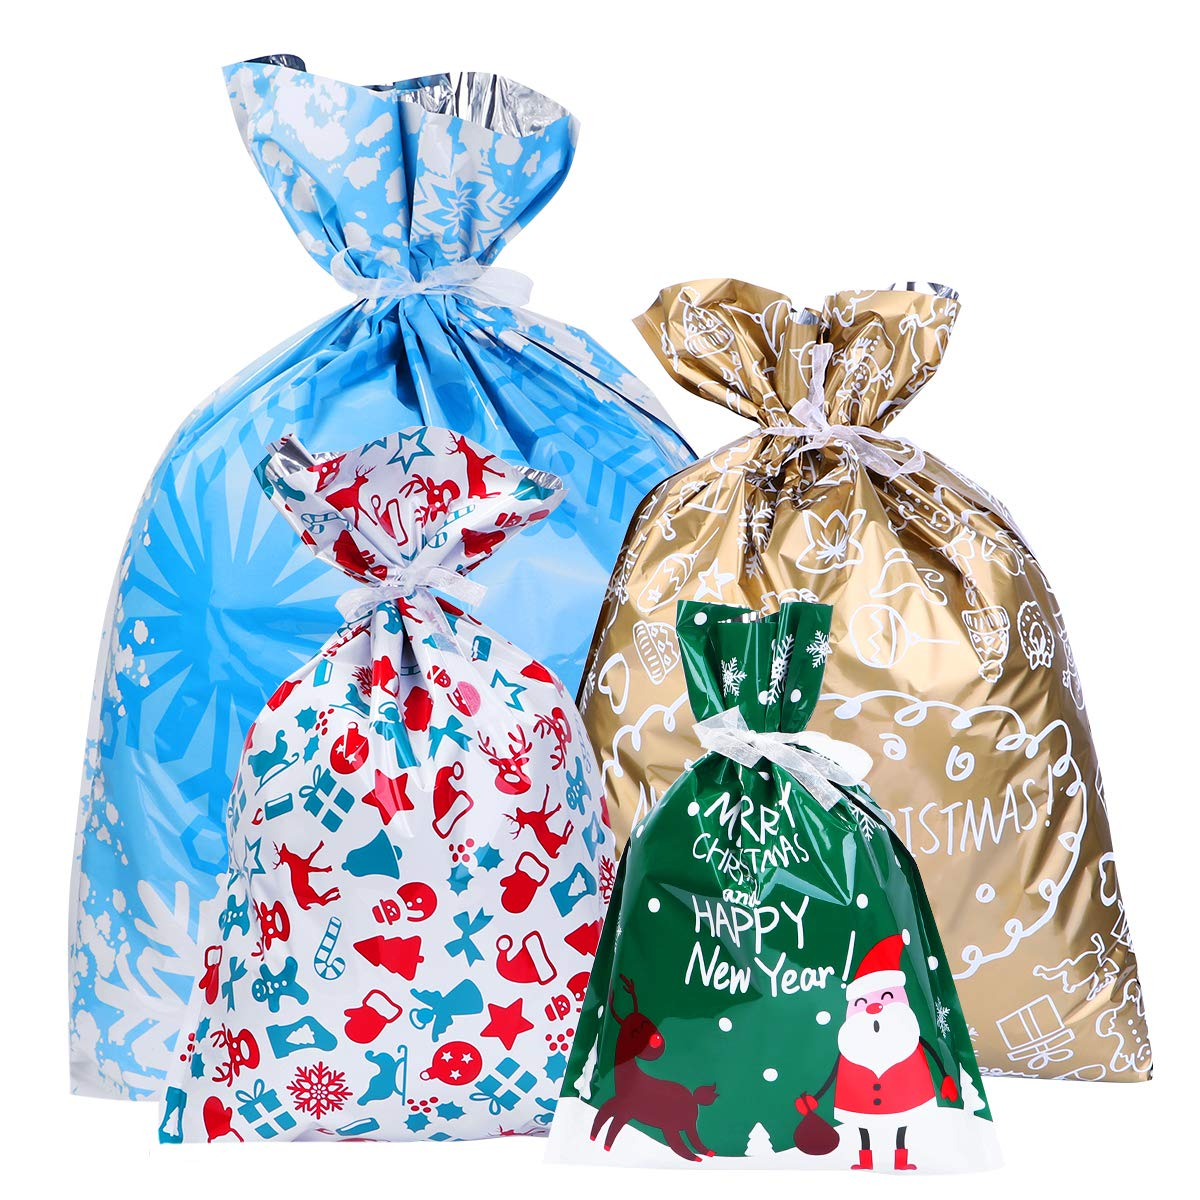 LUOEM Christmas Goody Bags Gift Bags Drawstring Gift Wrapping Bags Aluminum Foil Gift Bag Set Assorted Styles for The Holiday 30PCS